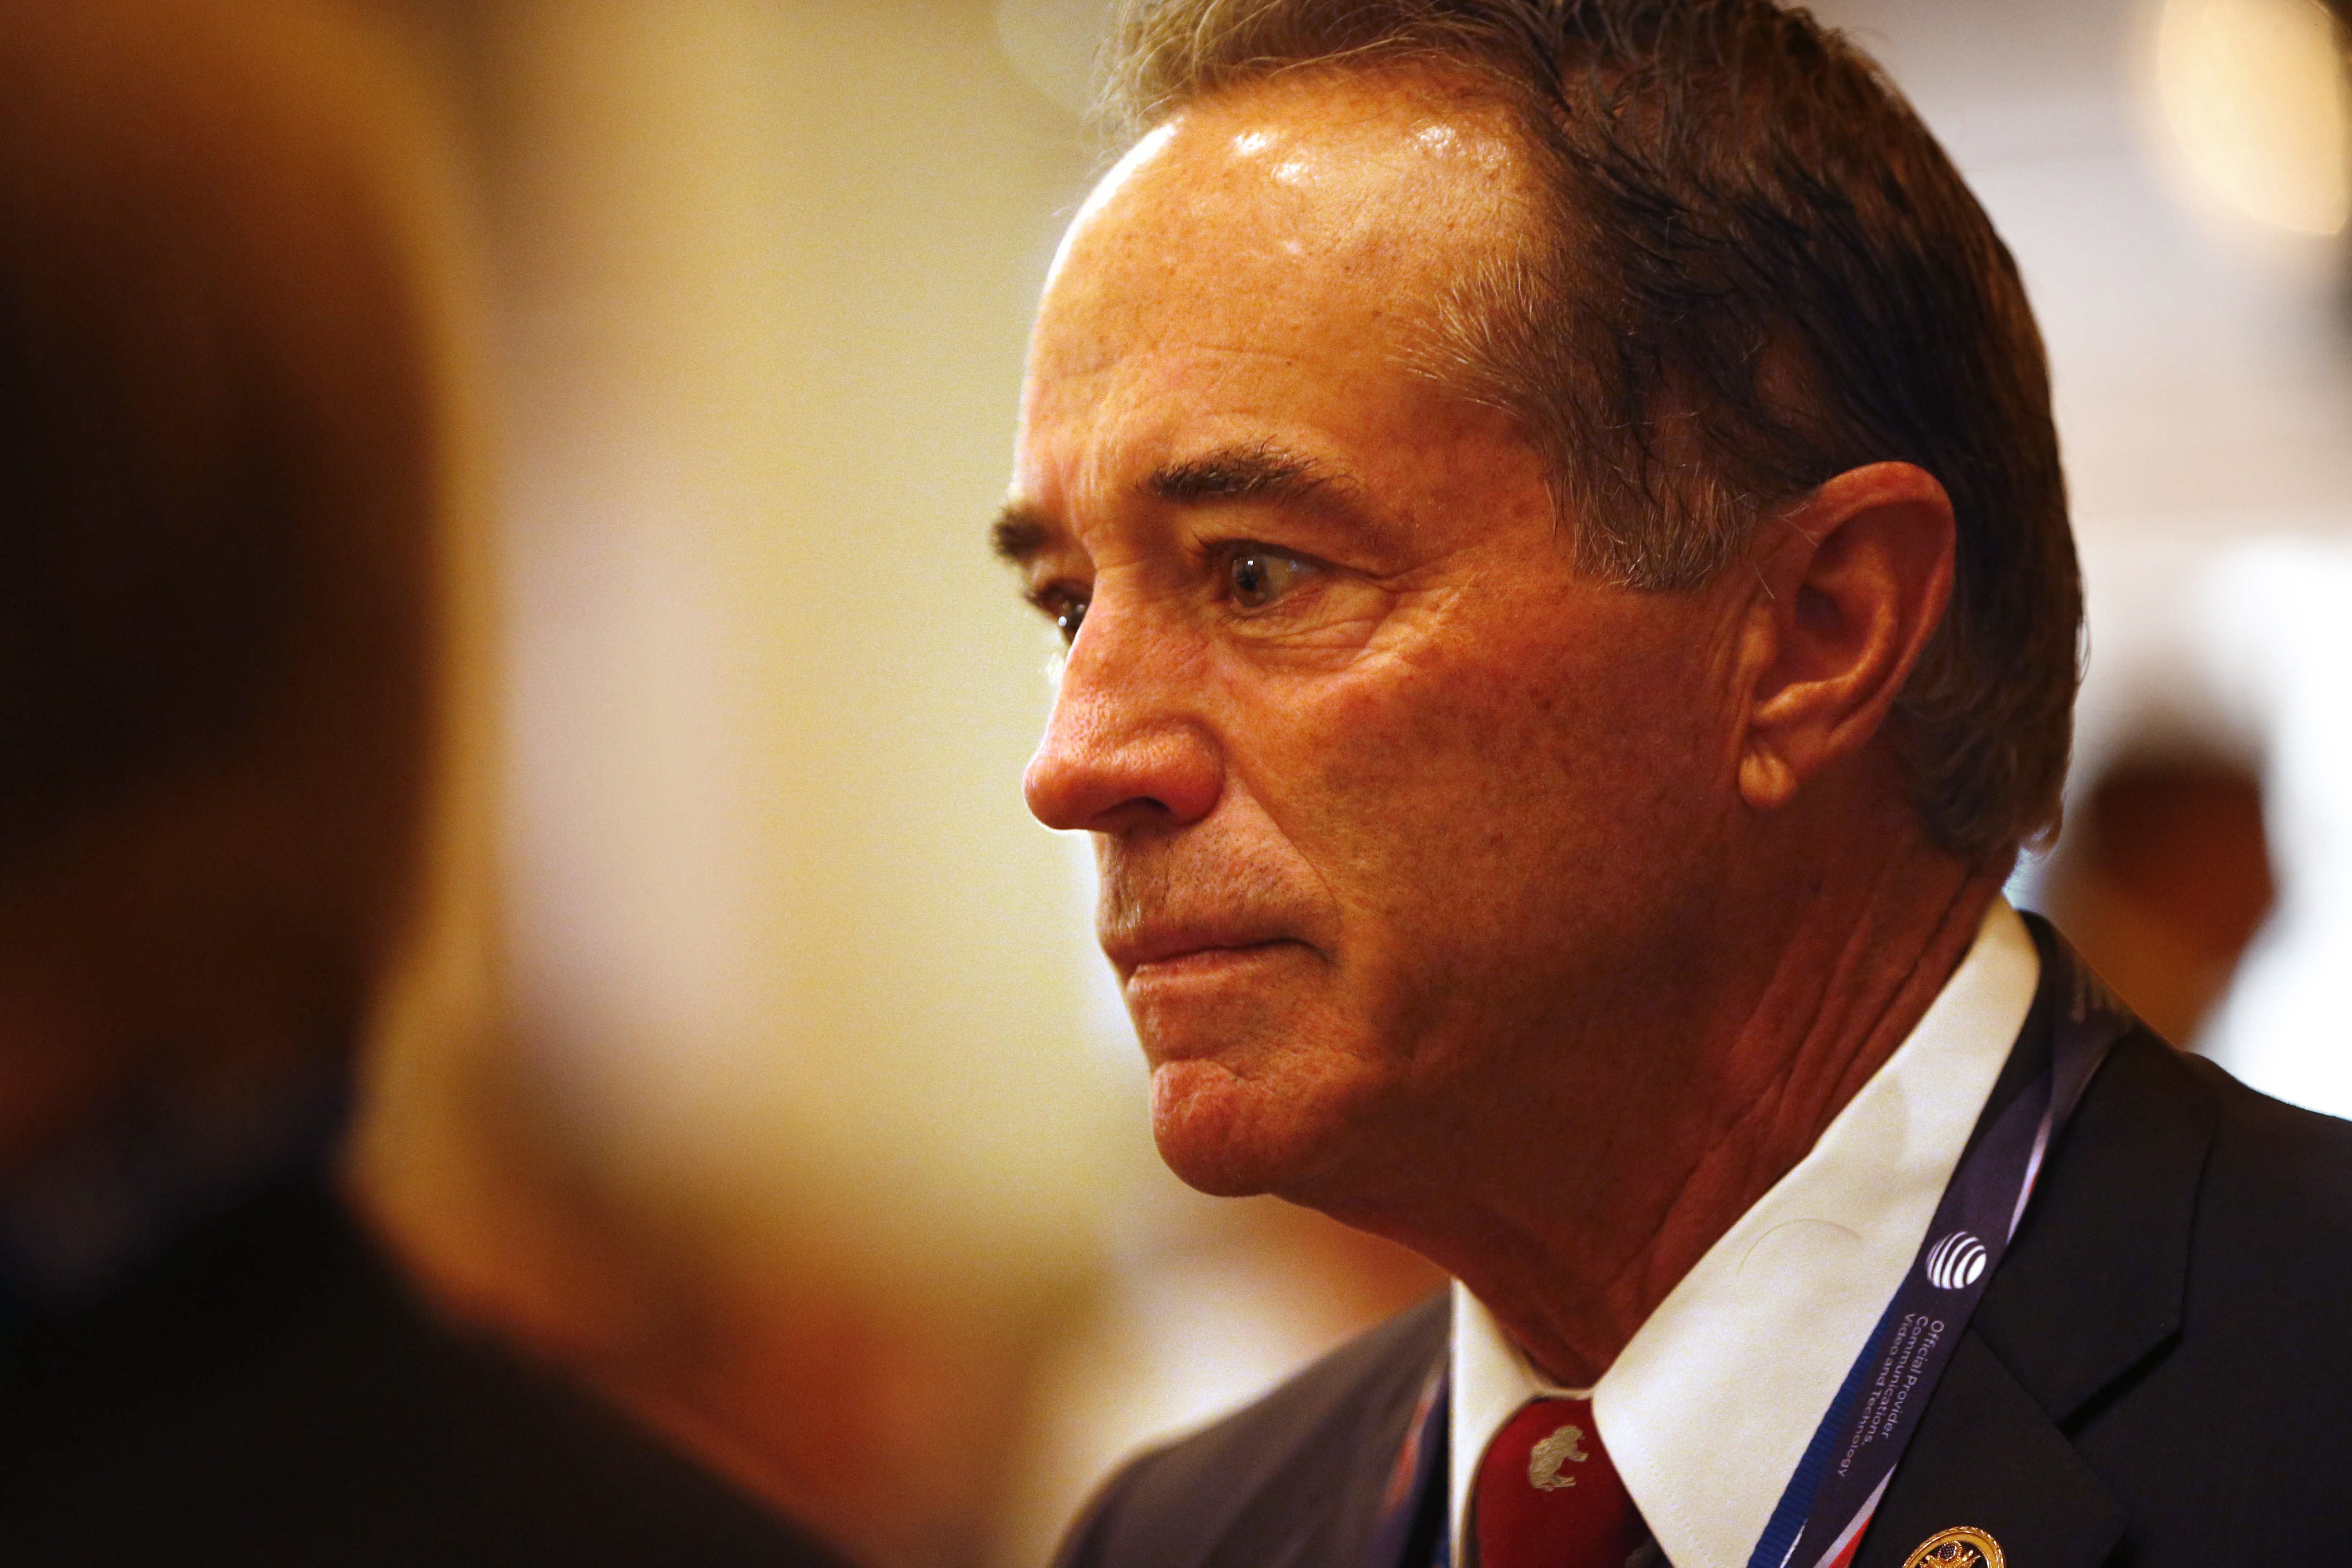 Rep. Chris Collins has been involved with the Australian biotech company Innate Immunotherapeutics for 15 years. (Derek Gee/Buffalo News)